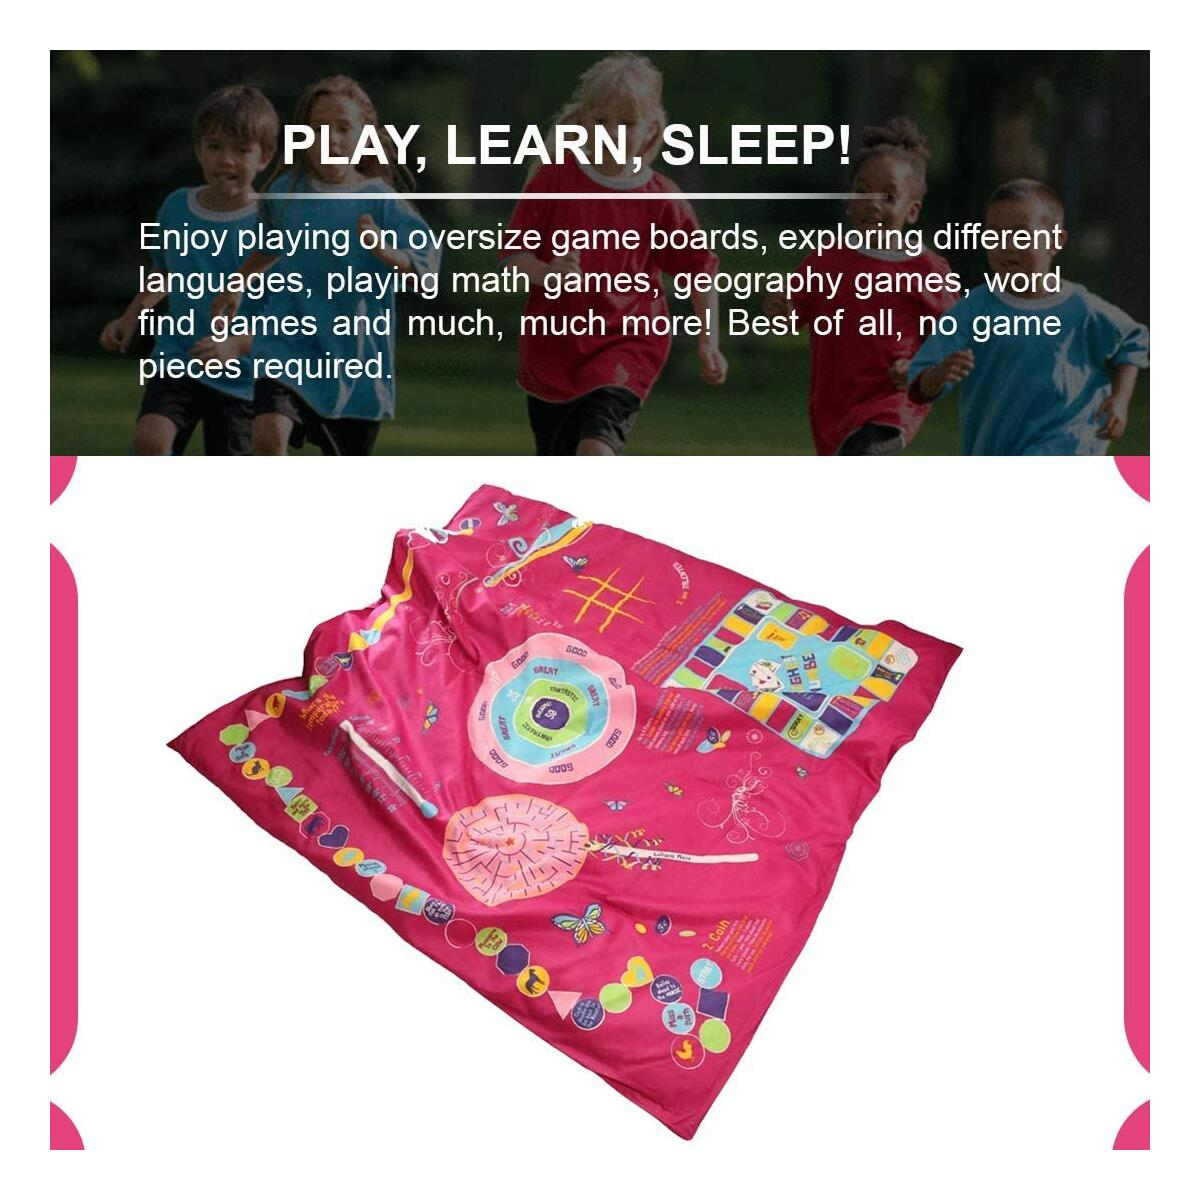 """Playtime Reversible 3in1 Slumber Bag with Over 25 Fun and Educational Games & Puzzles. Pink Soft Microfiber Kids Sleeping Bag for Girls up to 5'10"""""""